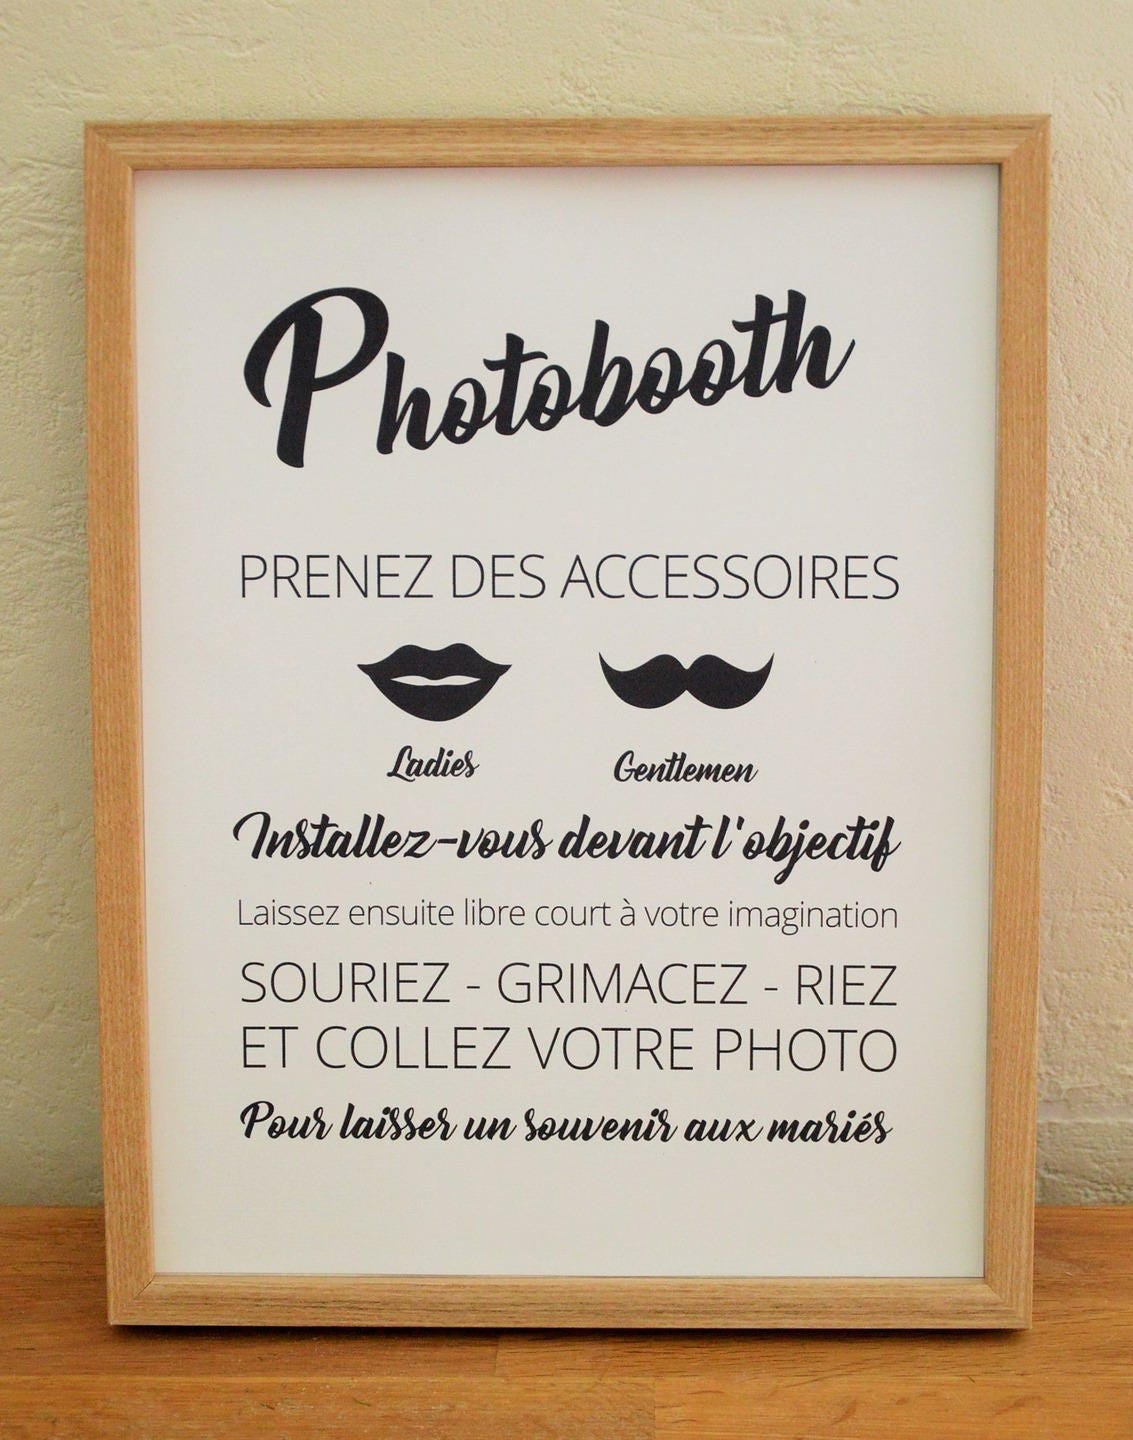 affiche photobooth mariage si78 montrealeast. Black Bedroom Furniture Sets. Home Design Ideas